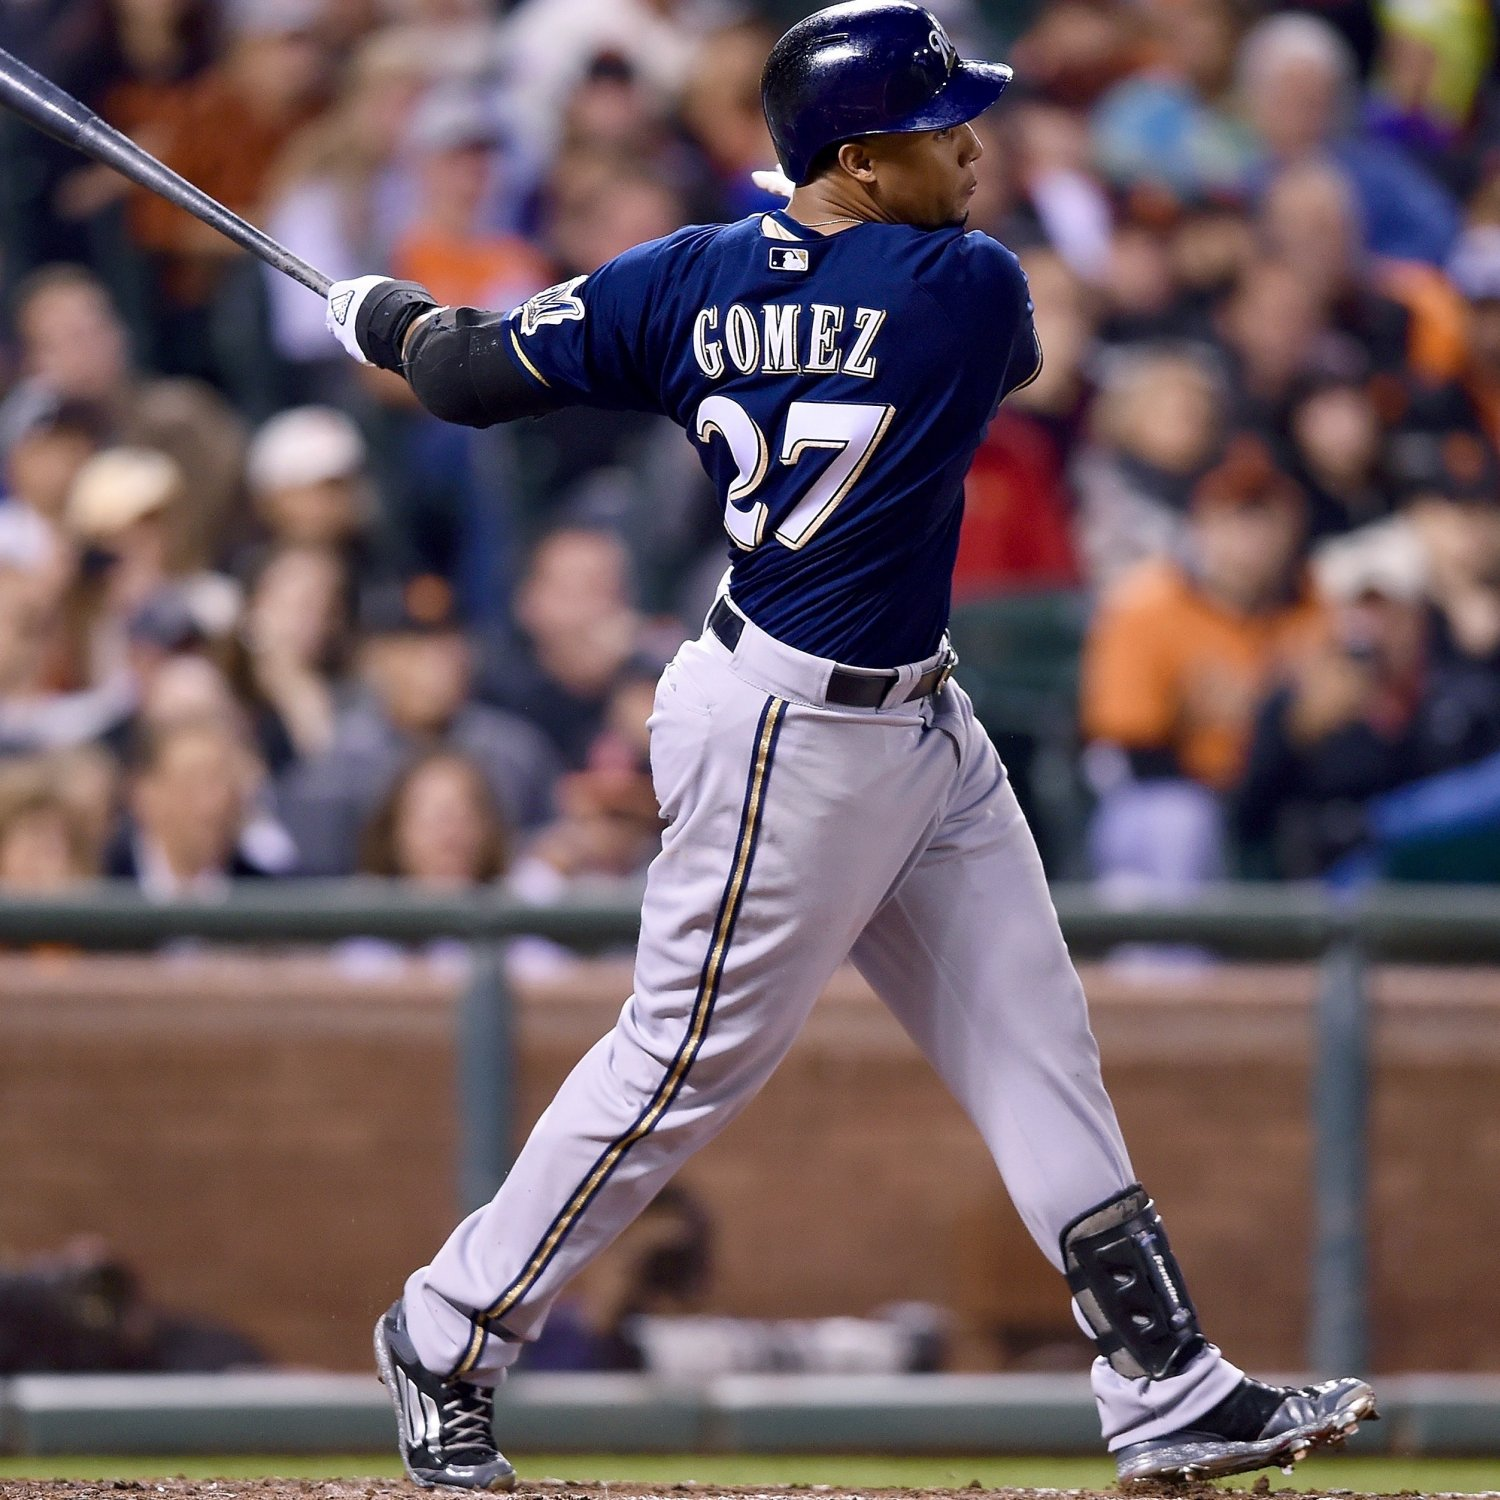 Mike Fiers Astros Trade: Carlos Gomez Trade Involving Mets Falls Apart Due To